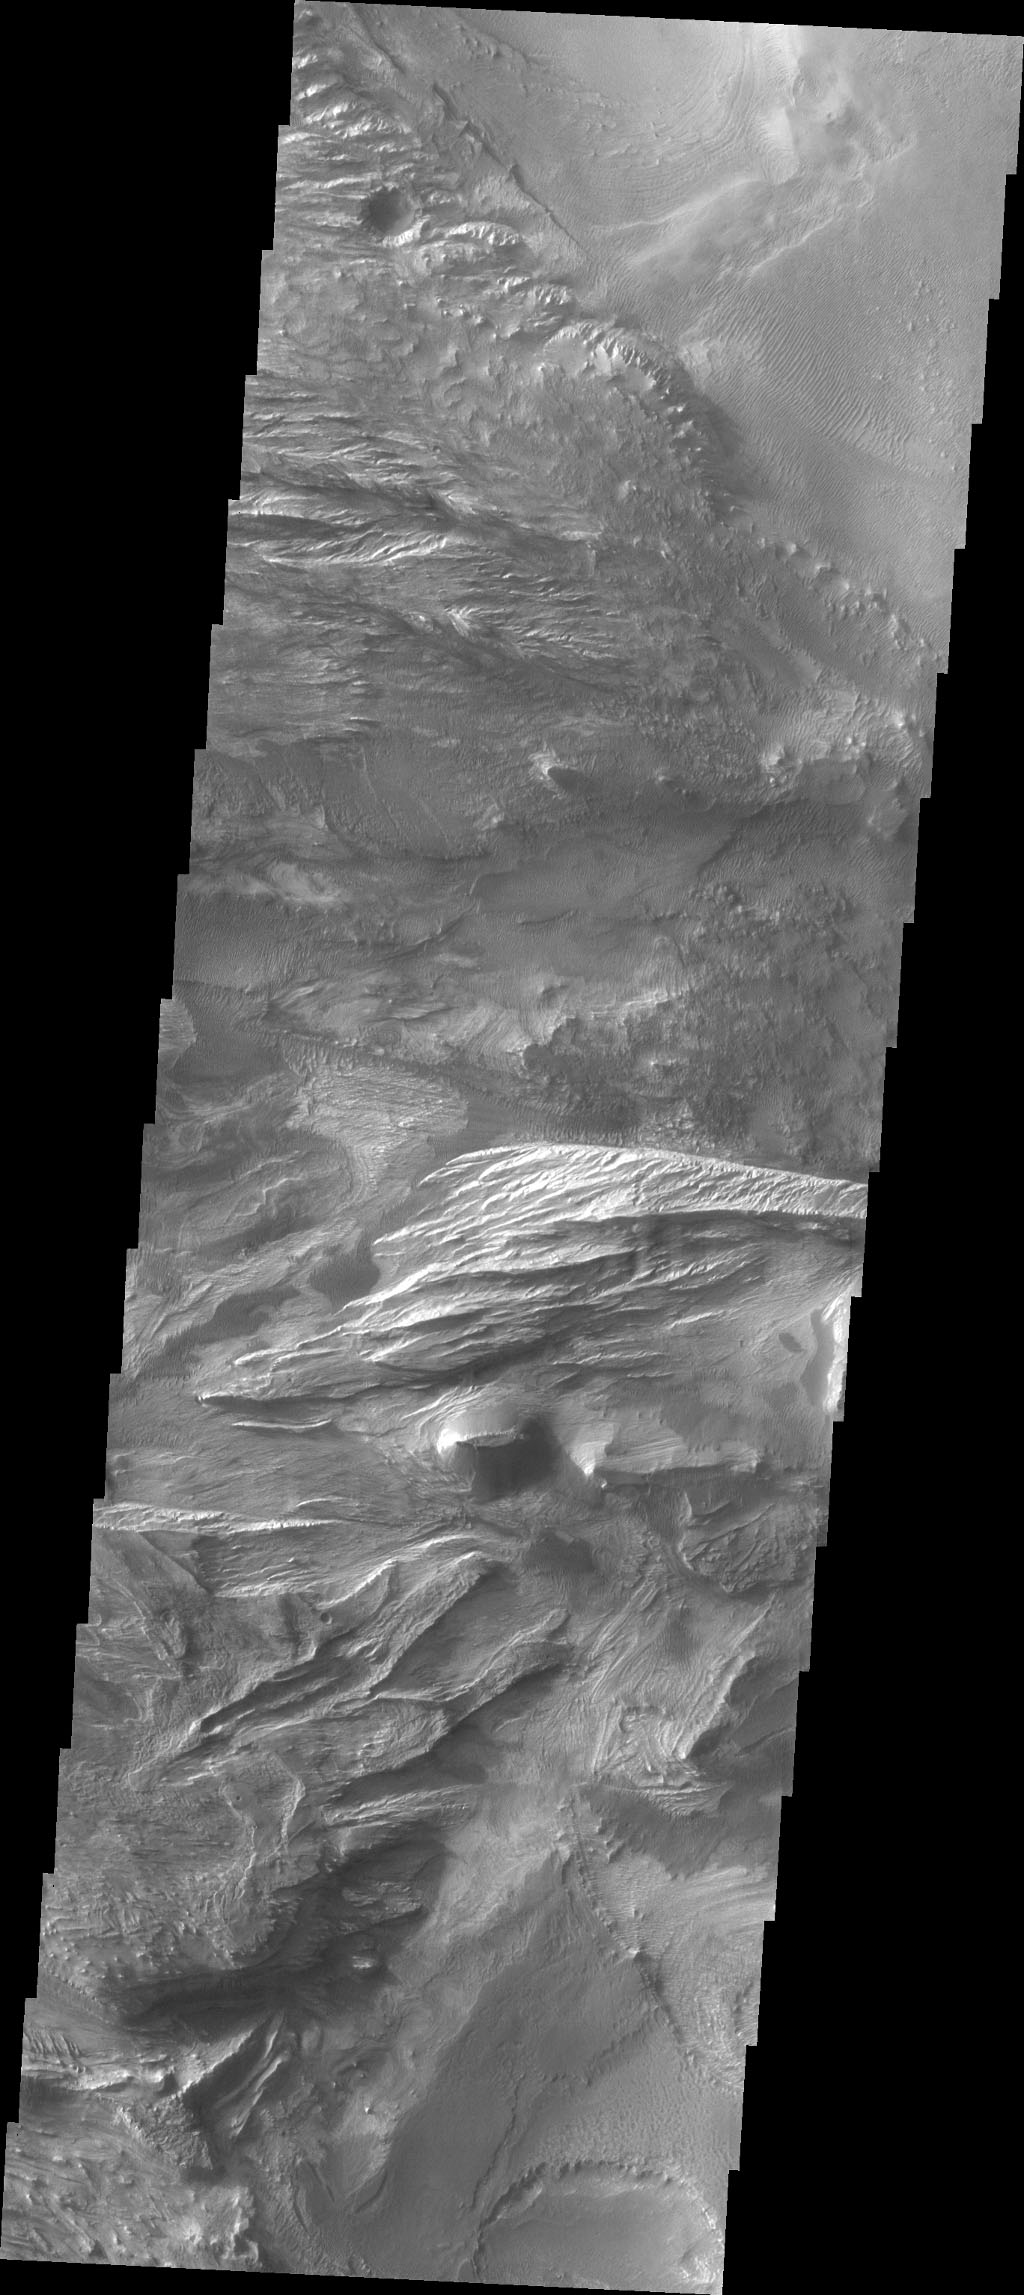 Candor Chasma is one of the largest canyons that make up Valles Marineris. This image captured by NASA's 2001 Mars Odyssey spacecraft shows part of western Candor and the erosion of a large mesa.